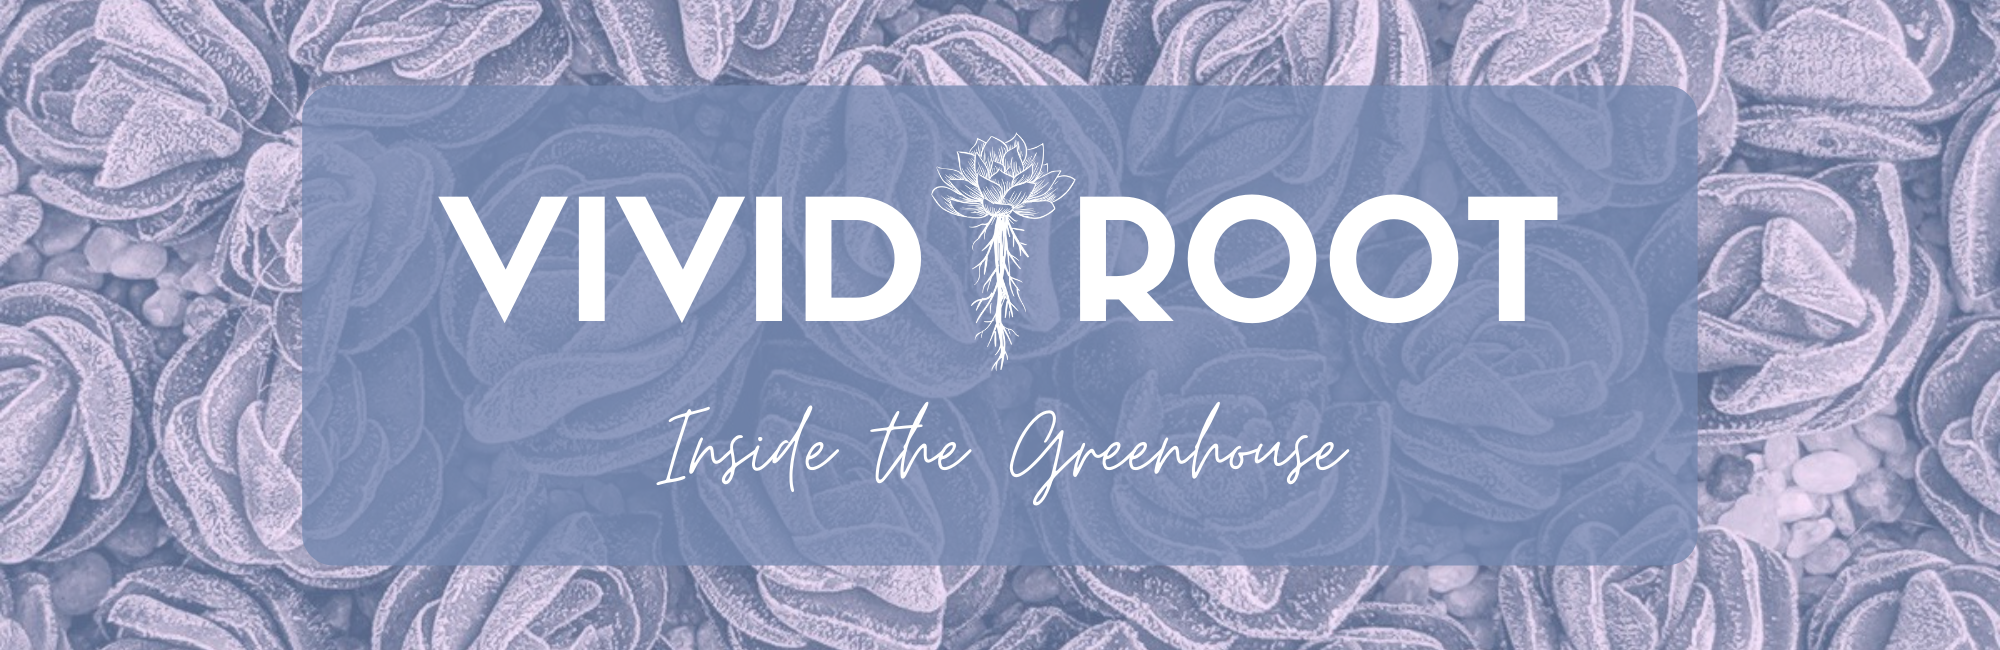 Vivid Root - Inside the Greenhouse